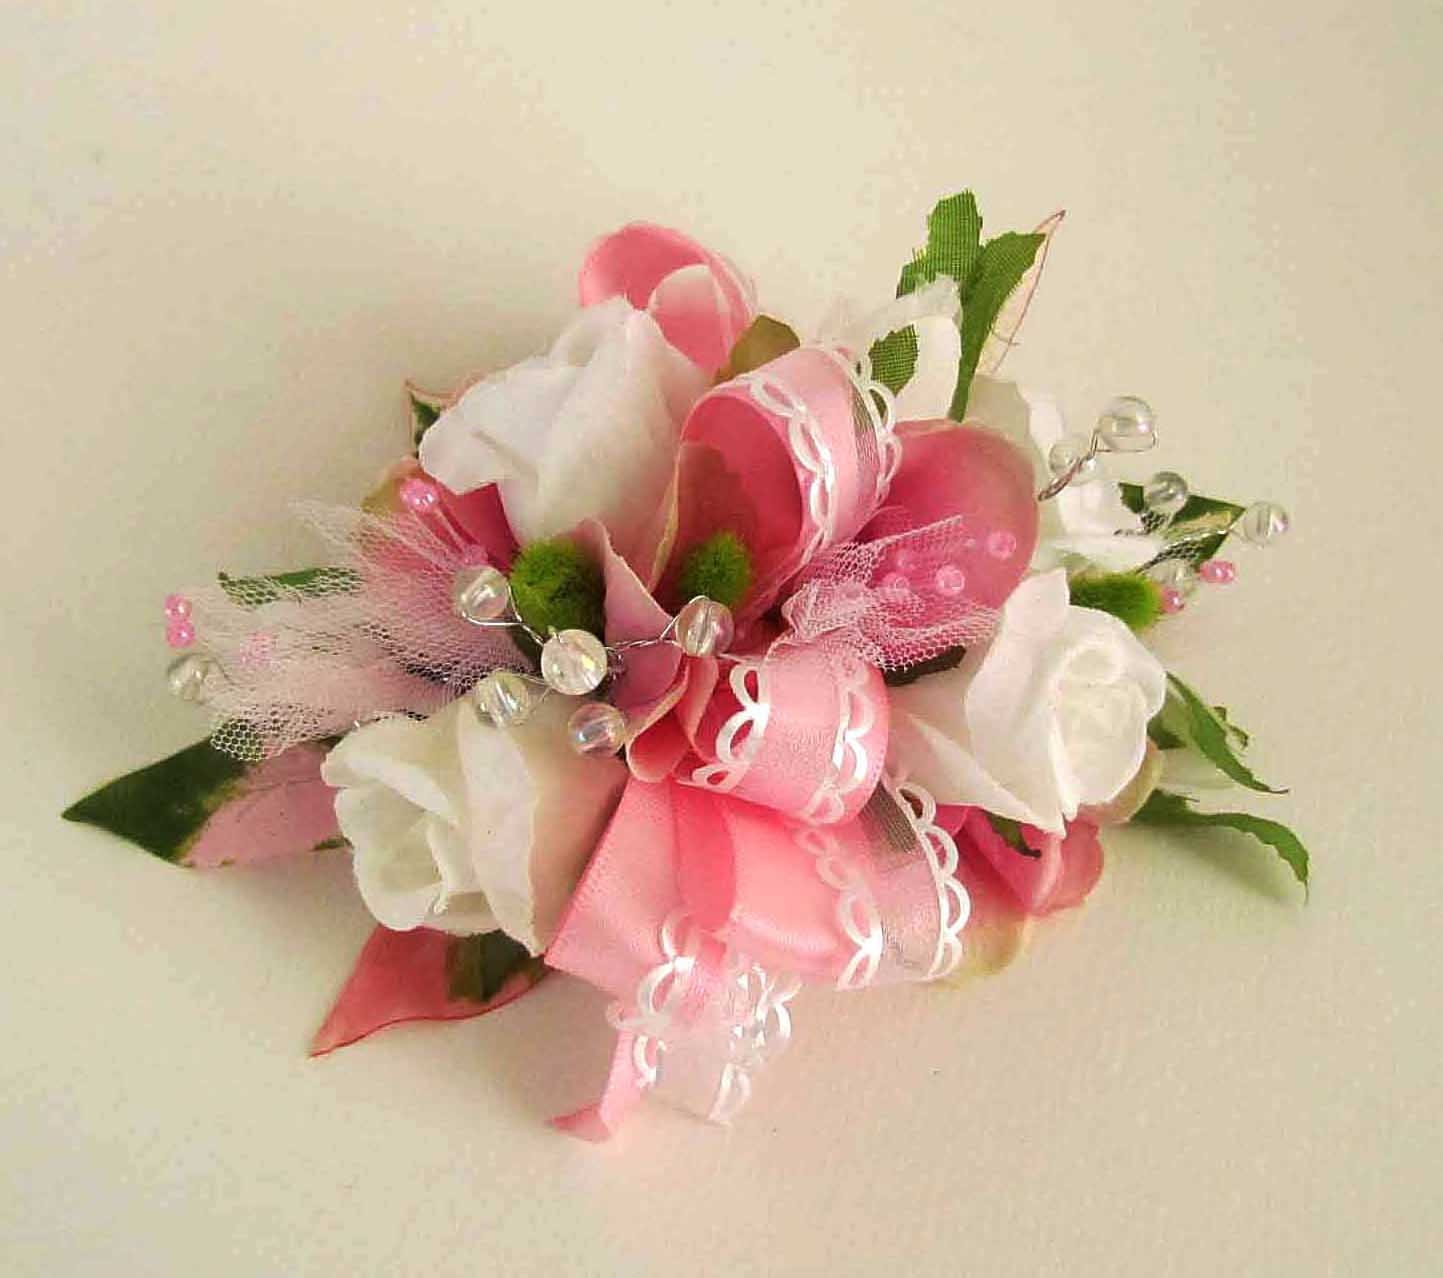 Sale Priced Pink Amp White Prom Corsage With Sweetheart Roses